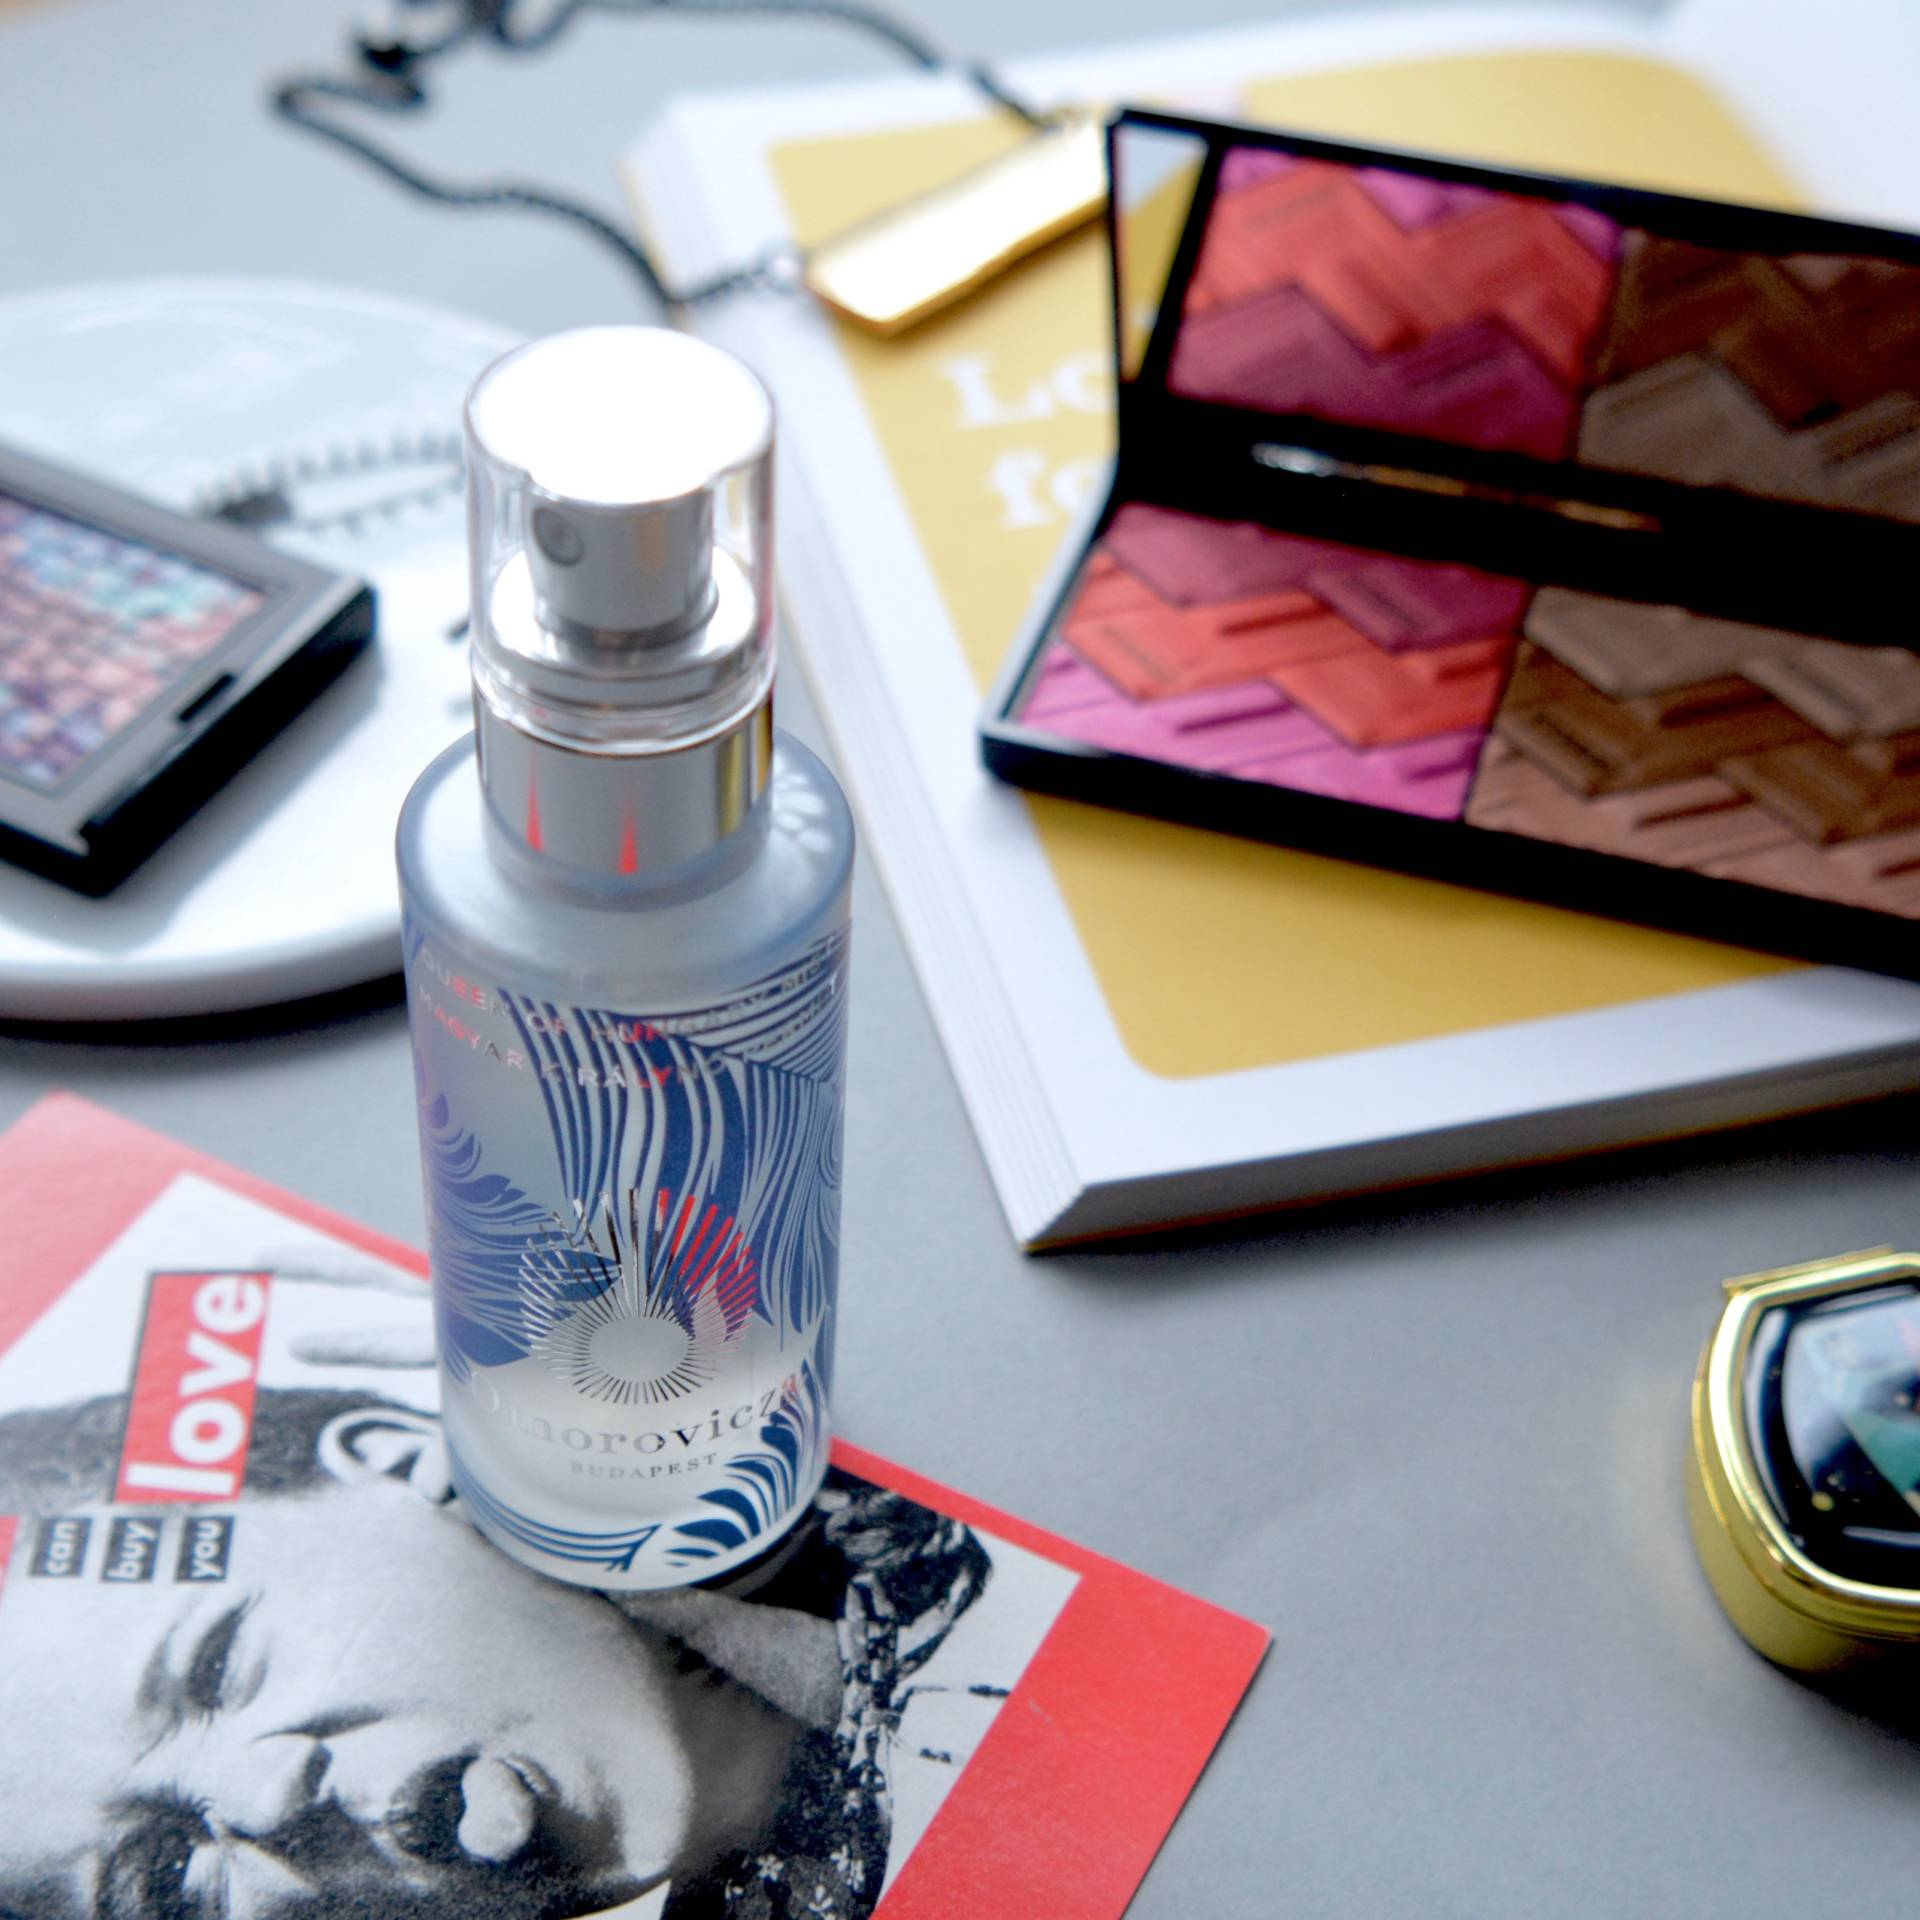 Beauty Products Too Pretty To Use: Omorovicza Queen Of Hungary Mist